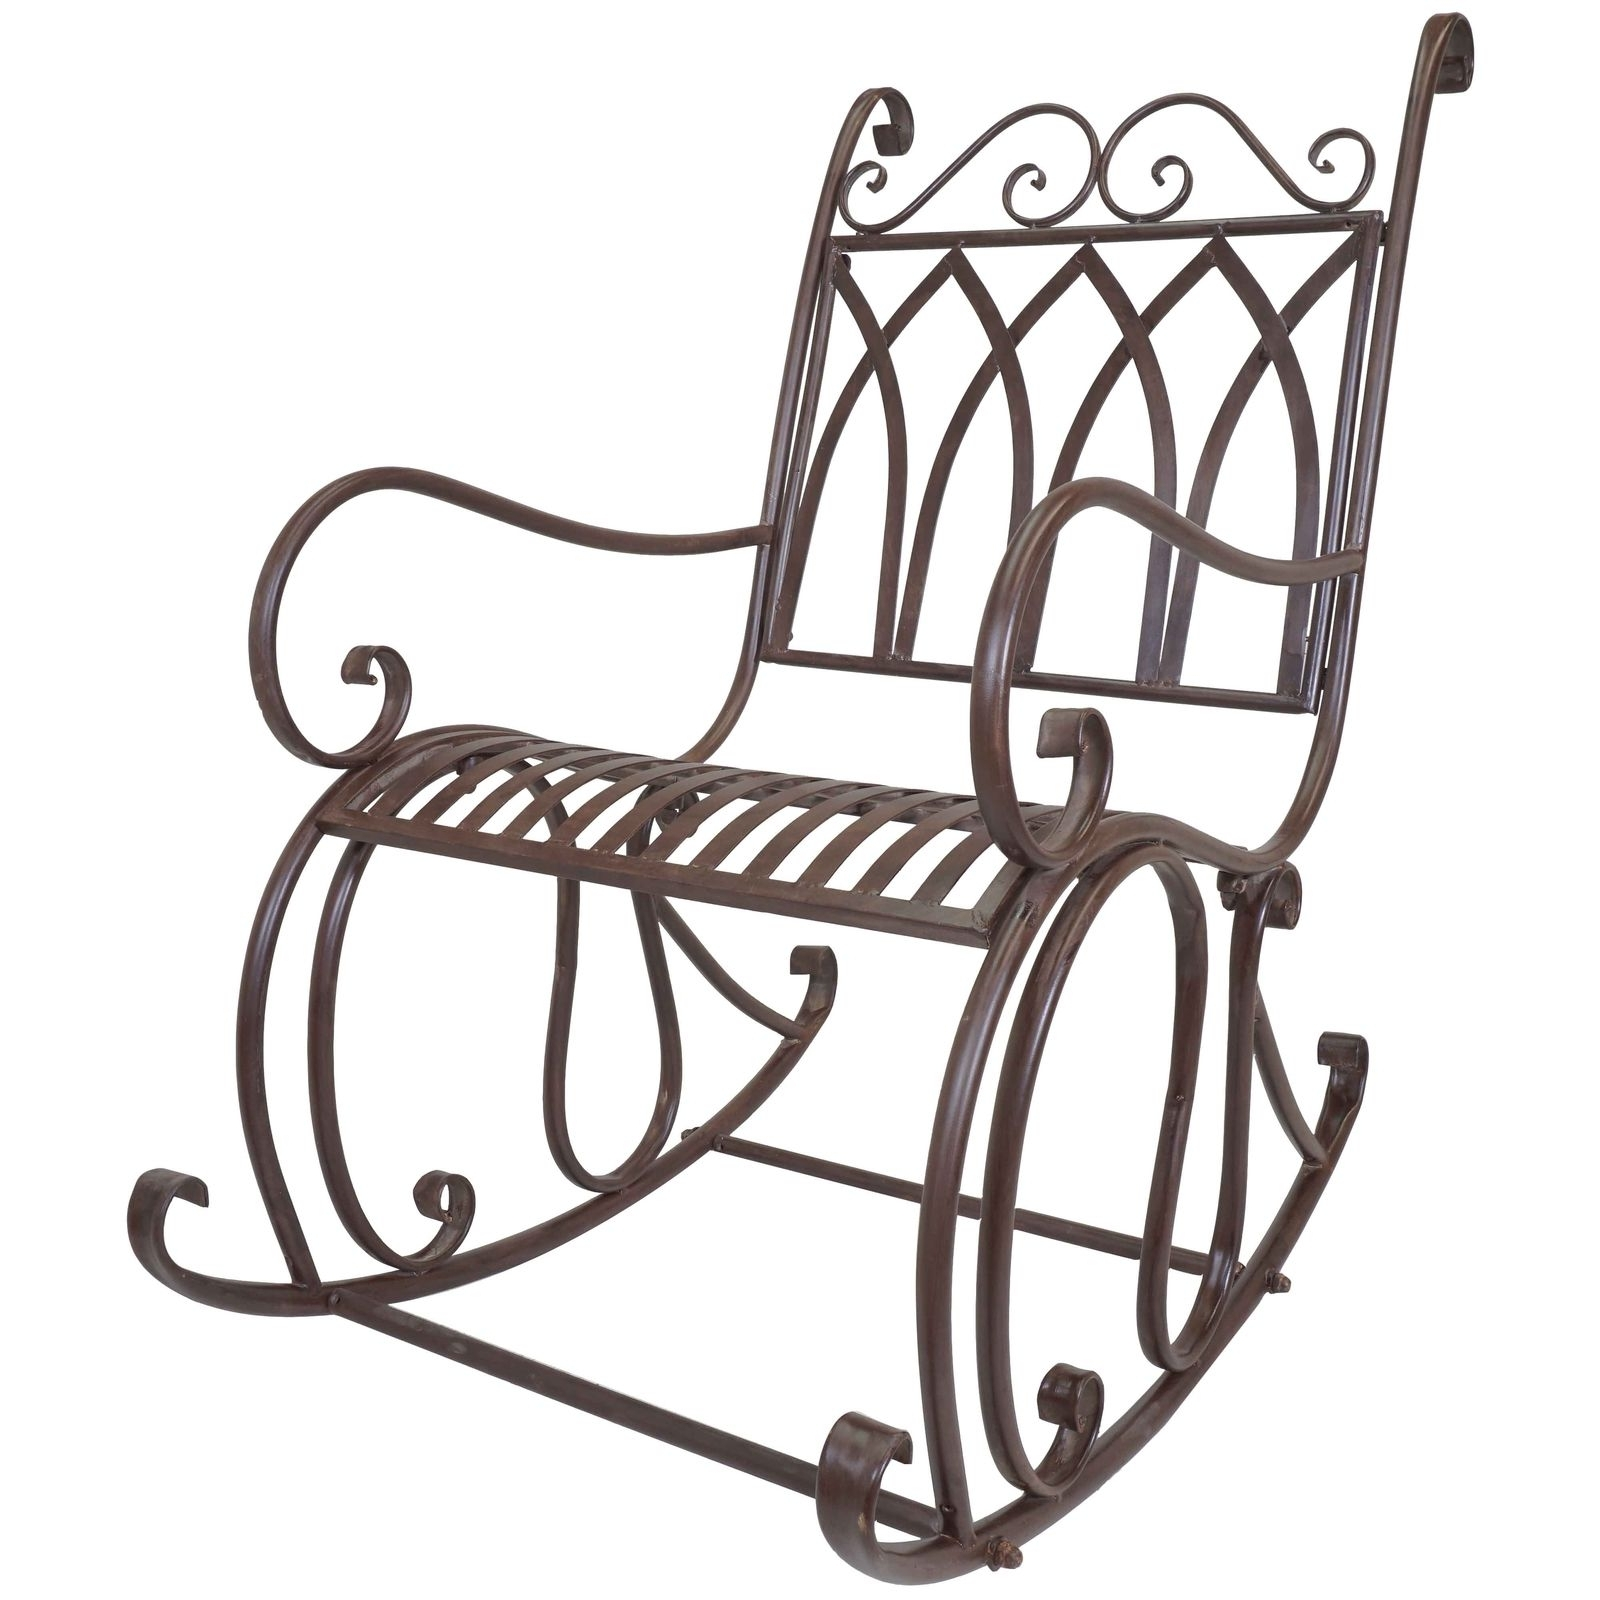 Titan Outdoor Metal Rocking Chair White Porch Patio Garden Seat Deck Intended For Current Patio Metal Rocking Chairs (View 18 of 20)